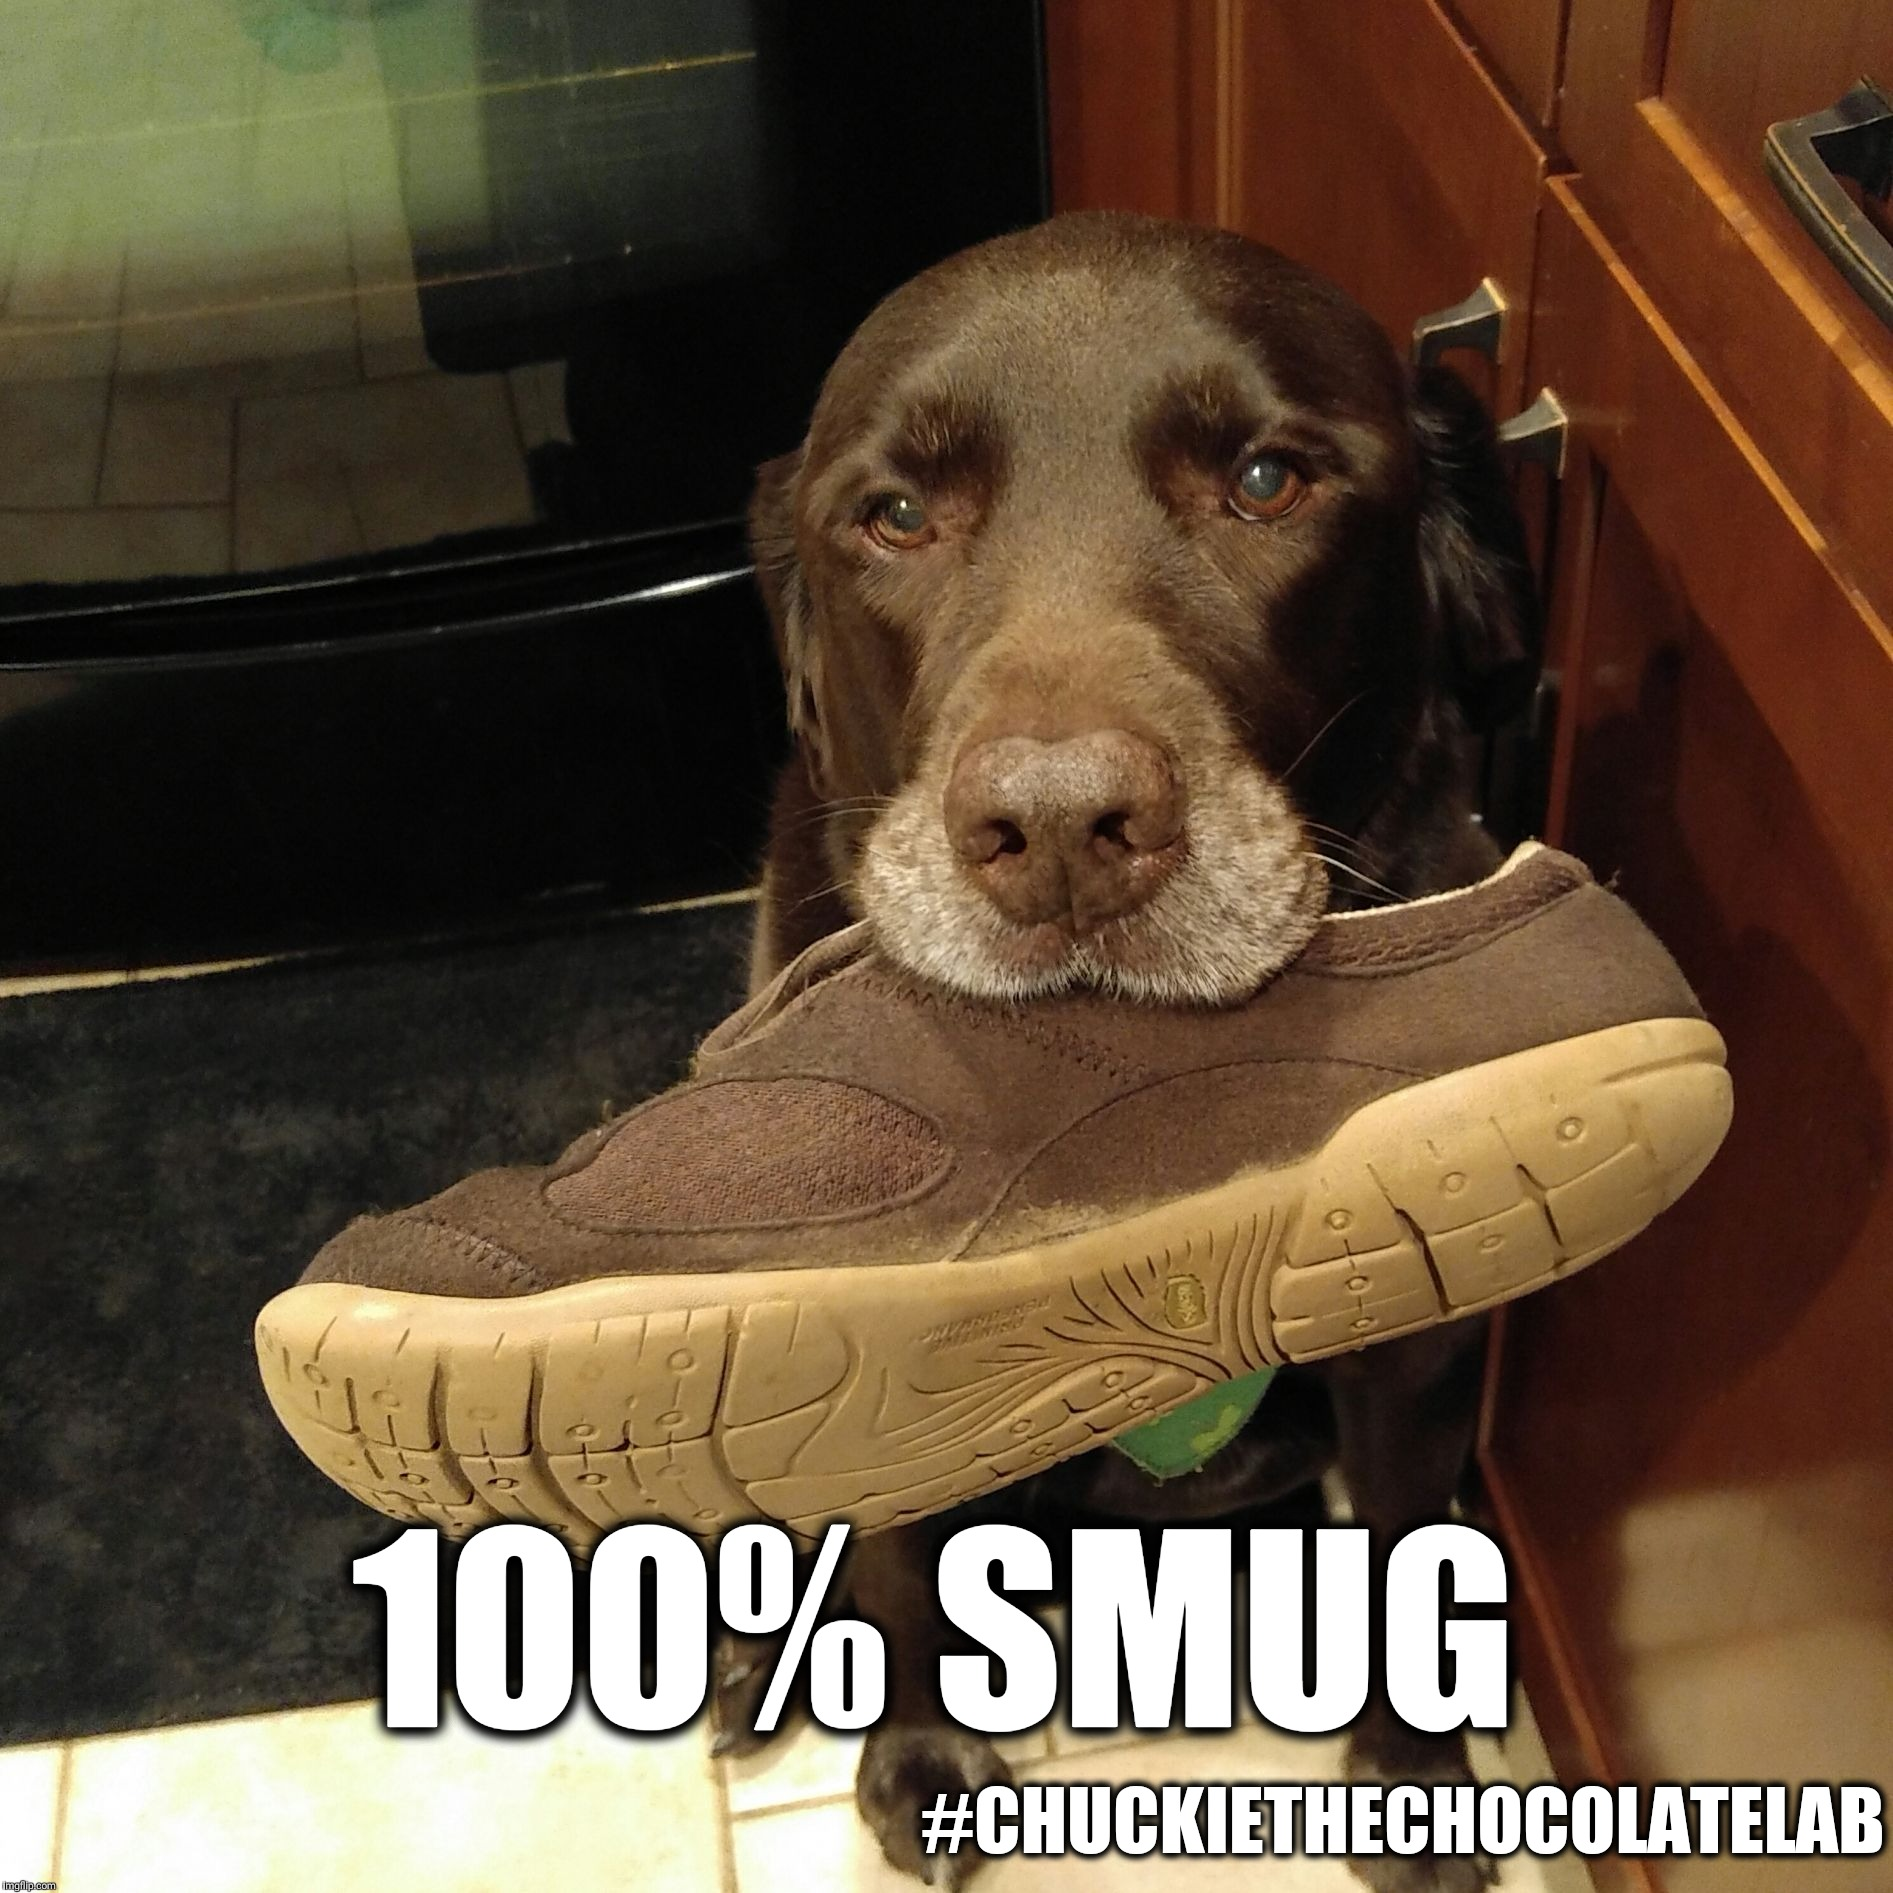 100% smug | 100% SMUG #CHUCKIETHECHOCOLATELAB | image tagged in chuckie the chocolate lab teamchuckie,100 smug,smug,dogs,funny,memes | made w/ Imgflip meme maker